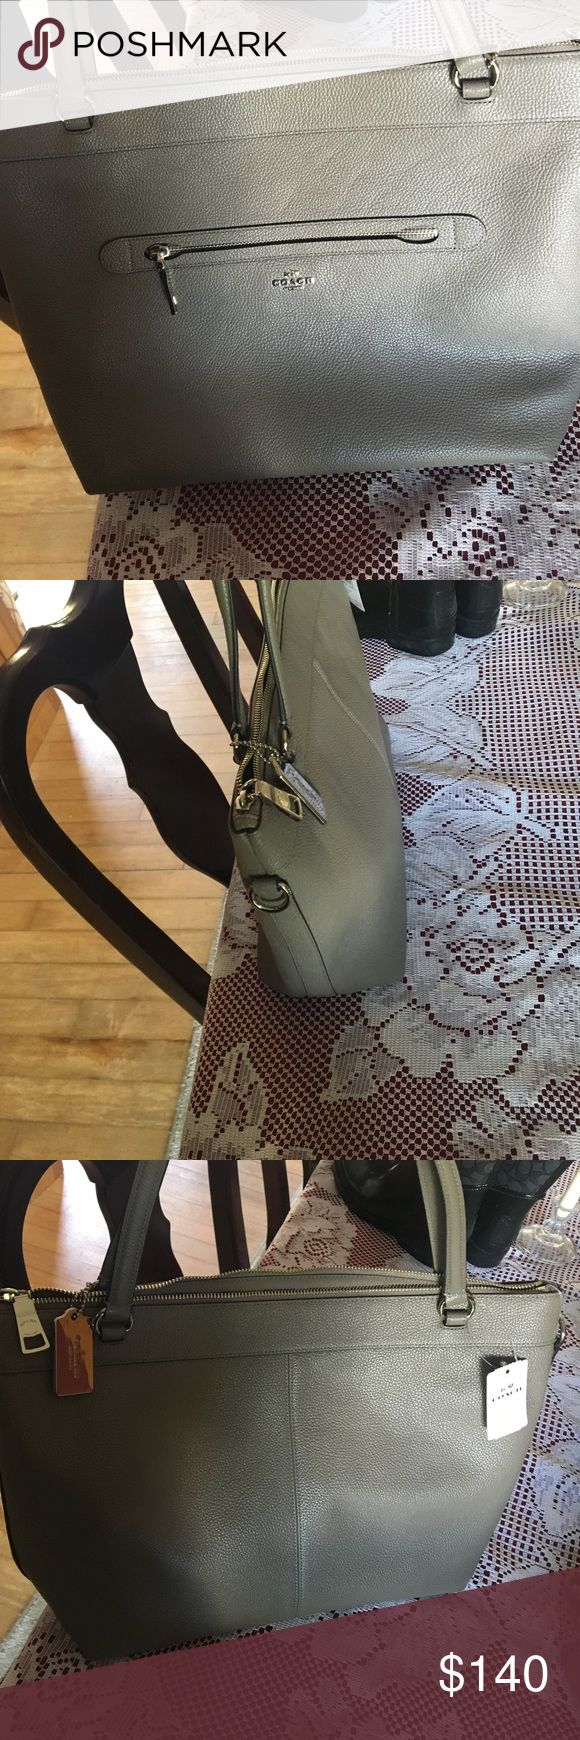 Coach shoulder bag or cross body bag! Great cross body/ shoulder bag olive/ tope color Length 13 inches hight 12 inches OFFERS EXCEPTED!! Coach Bags Shoulder Bags